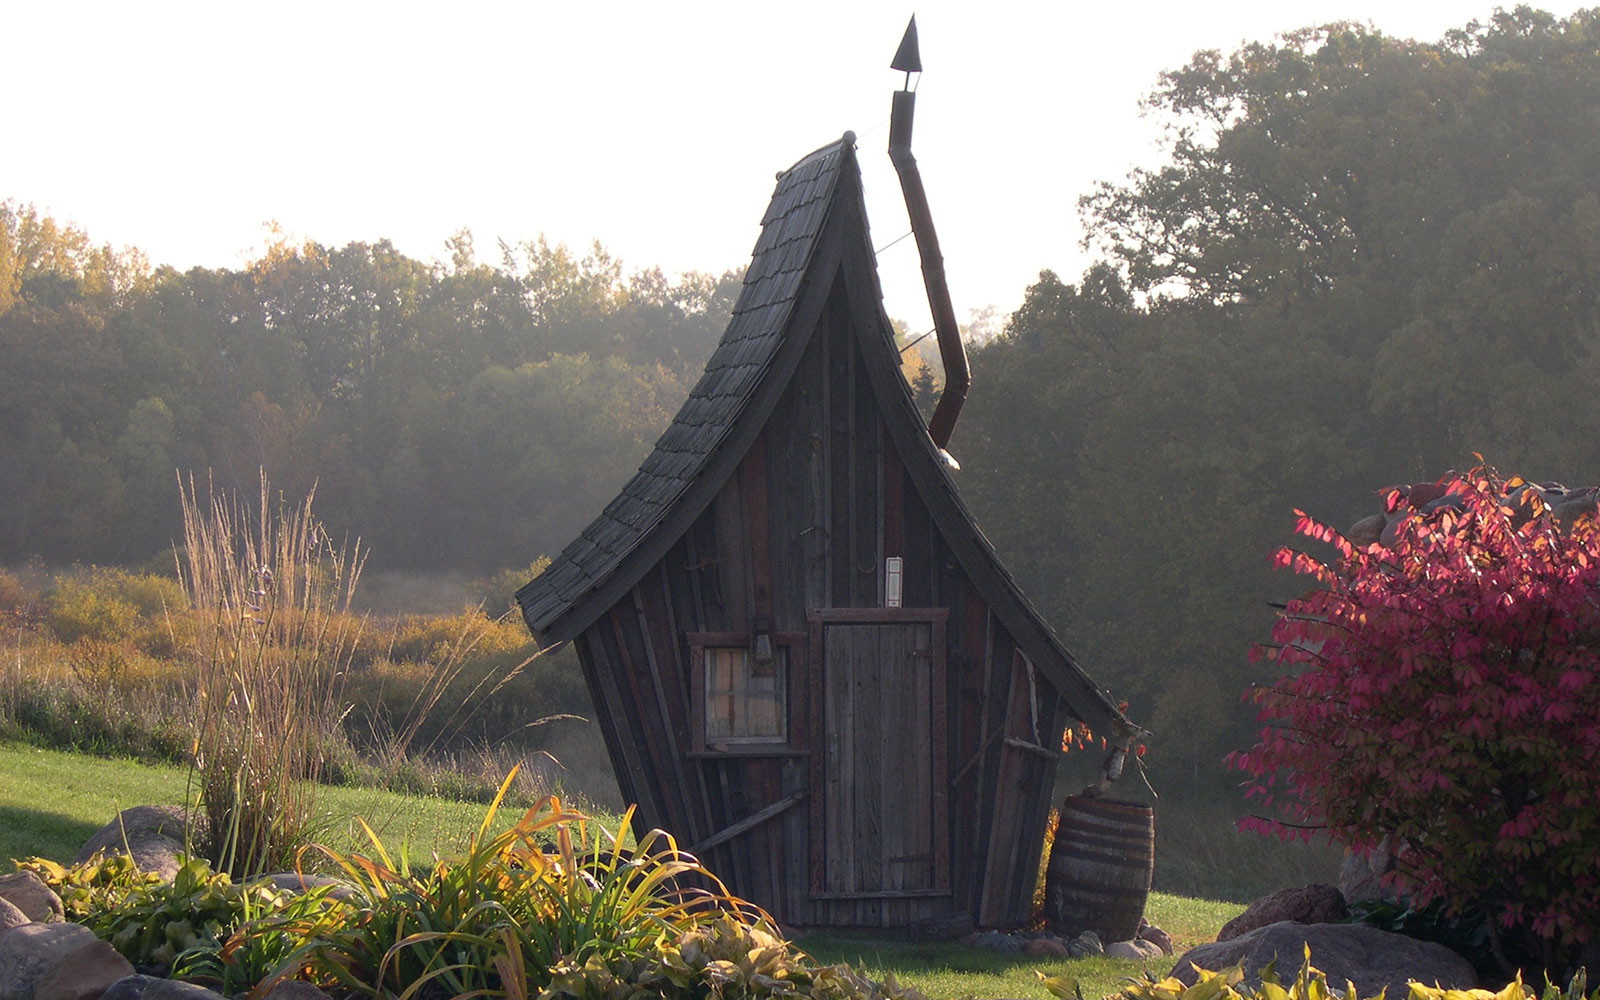 The Rustic Way Turns Fairy Tale Guest Houses Into Reality